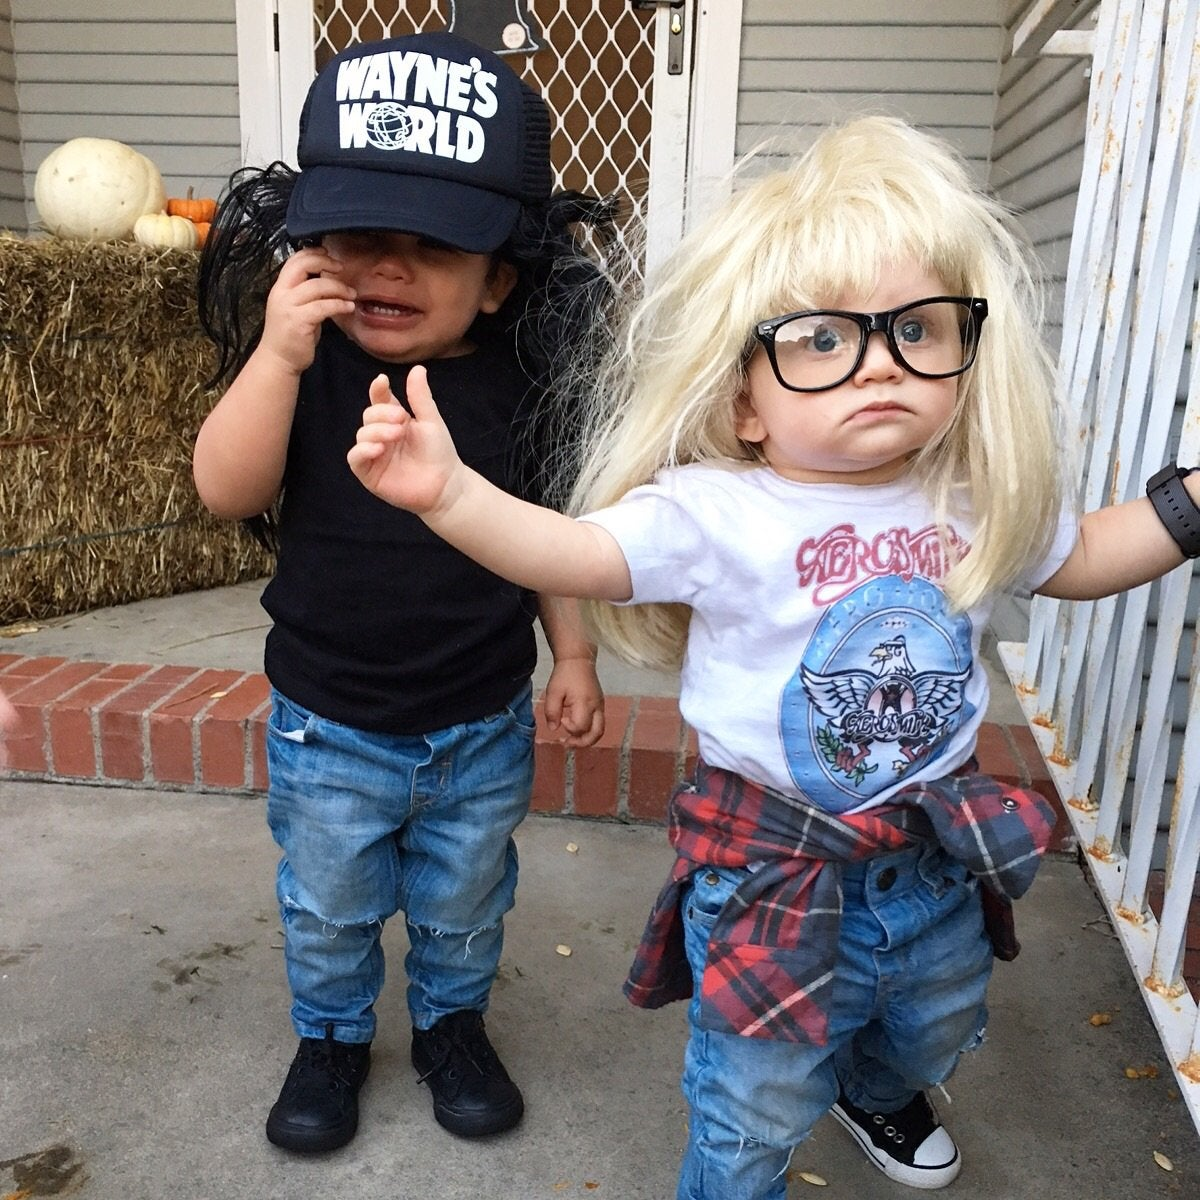 Wayne and Garth babies